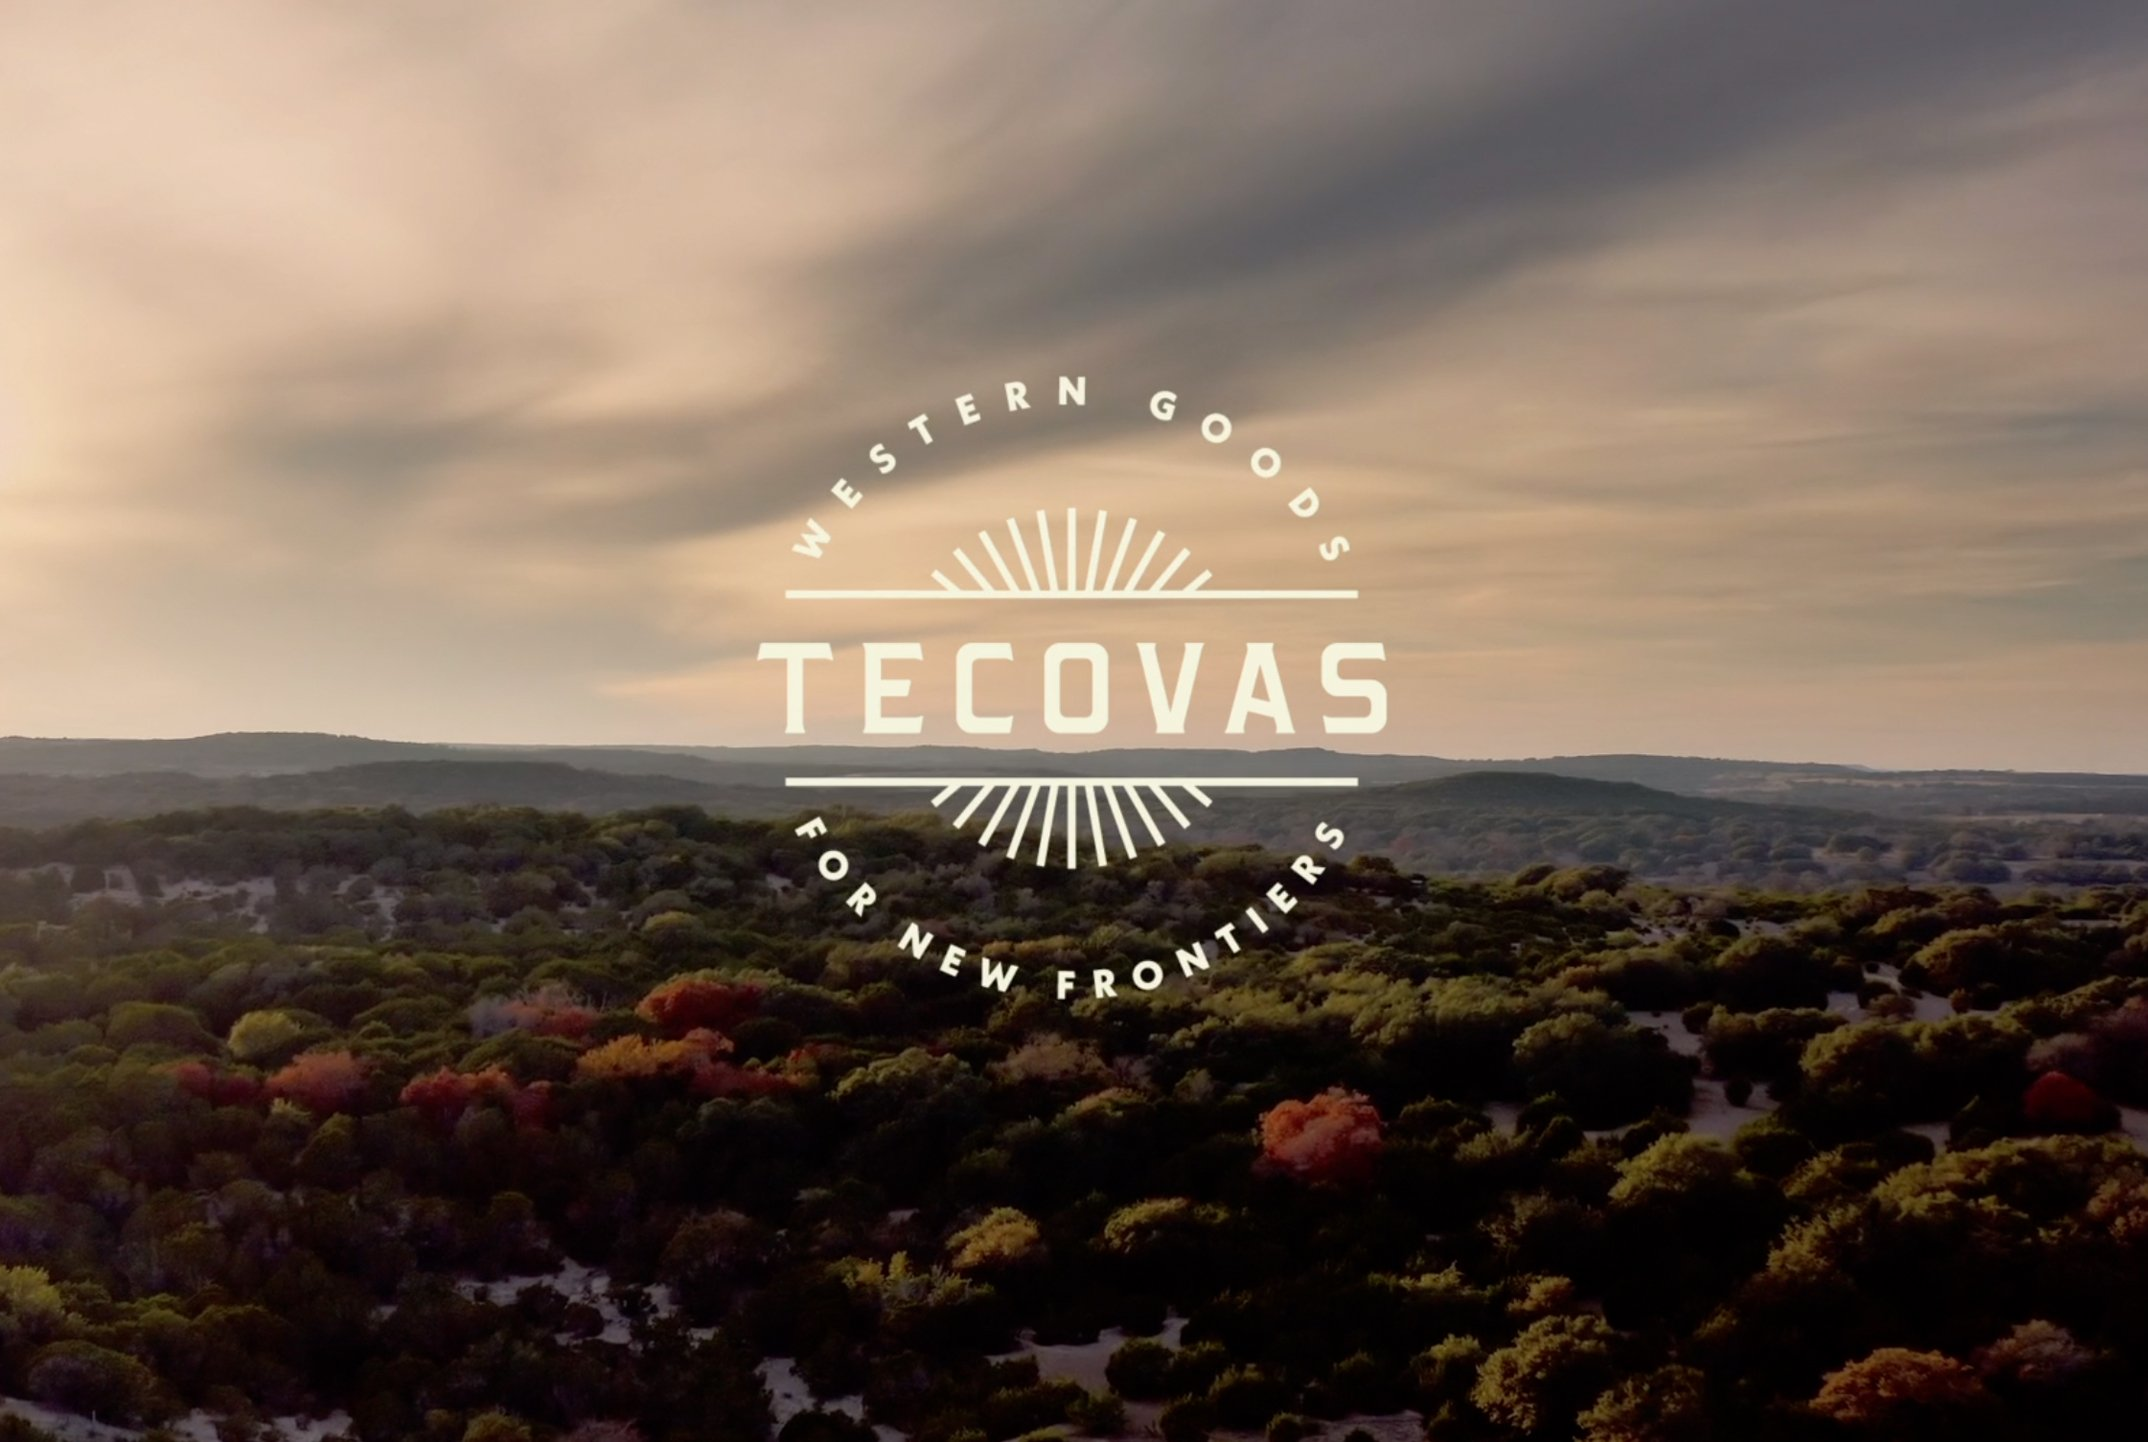 Tecovas: New frontiers for America's official shoe